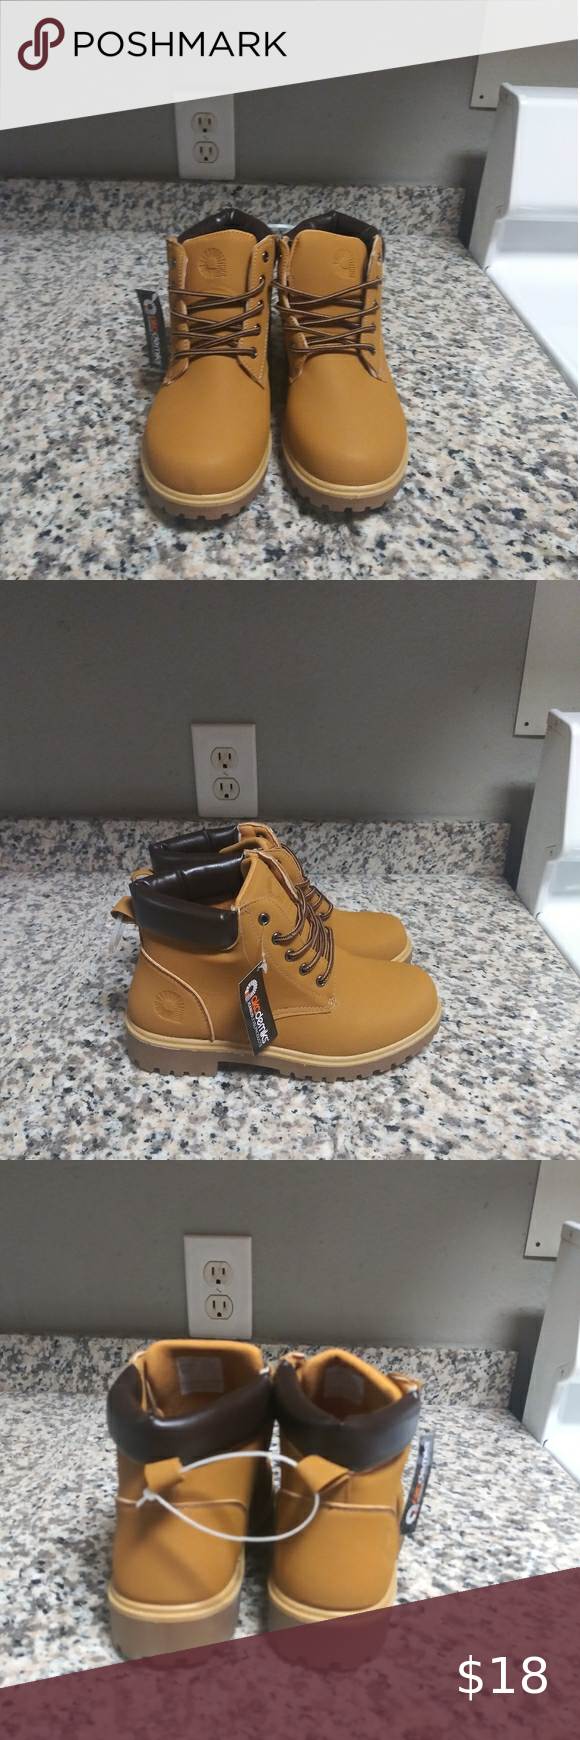 Brand New akademiks work boots size 5 US Boys Brand New Akademiks work boots size 5 Us Boys. Nice looking durable boots! Questions please let me know and thank you for shopping my closet. Akademiks Shoes Boots